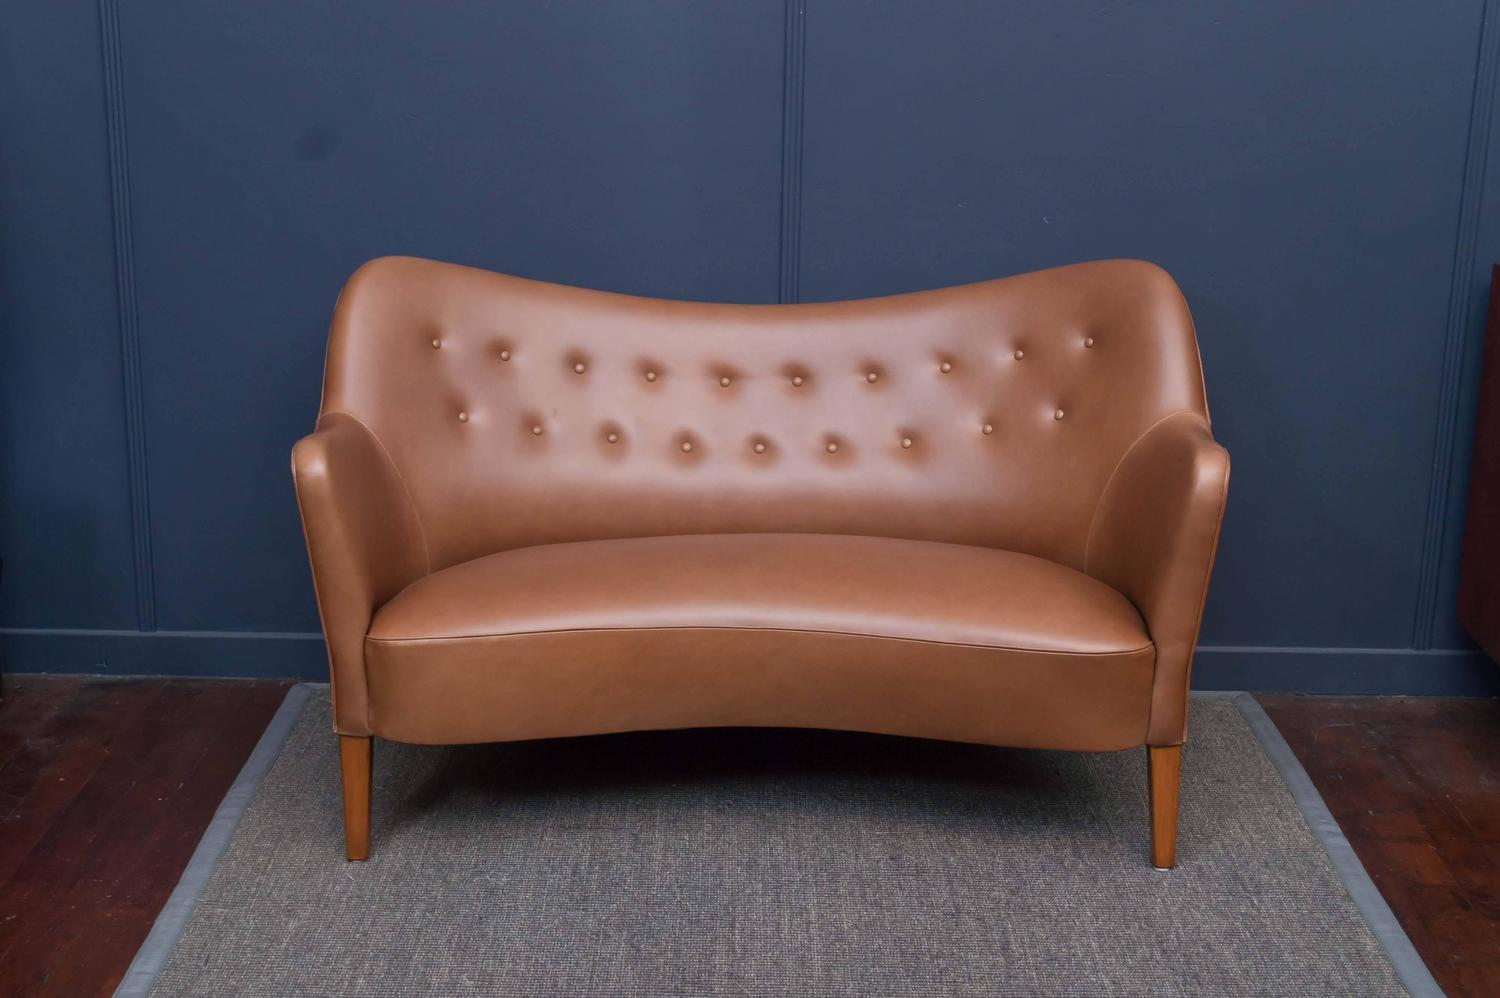 Danish Cognac Leather Sofa For Sale at 1stdibs : DSC0341z from www.1stdibs.com size 1500 x 998 jpeg 106kB